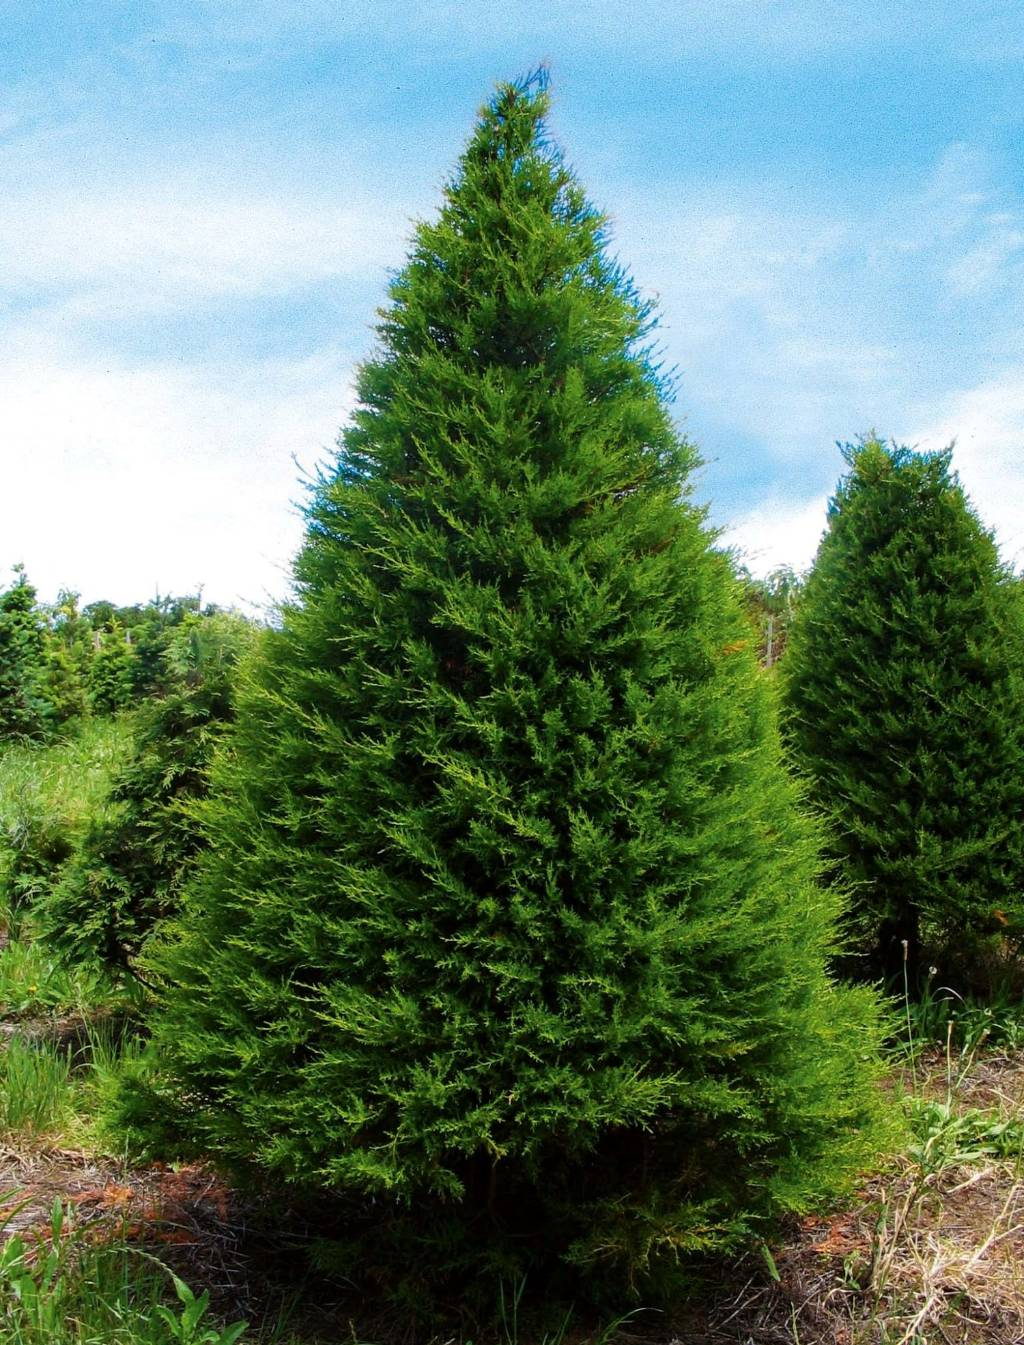 macrocarpa cupressus macrocarpa grow readily in new zealand and while a long way 5 of 9 mt gabriel christmas trees - How Long Does A Christmas Tree Take To Grow